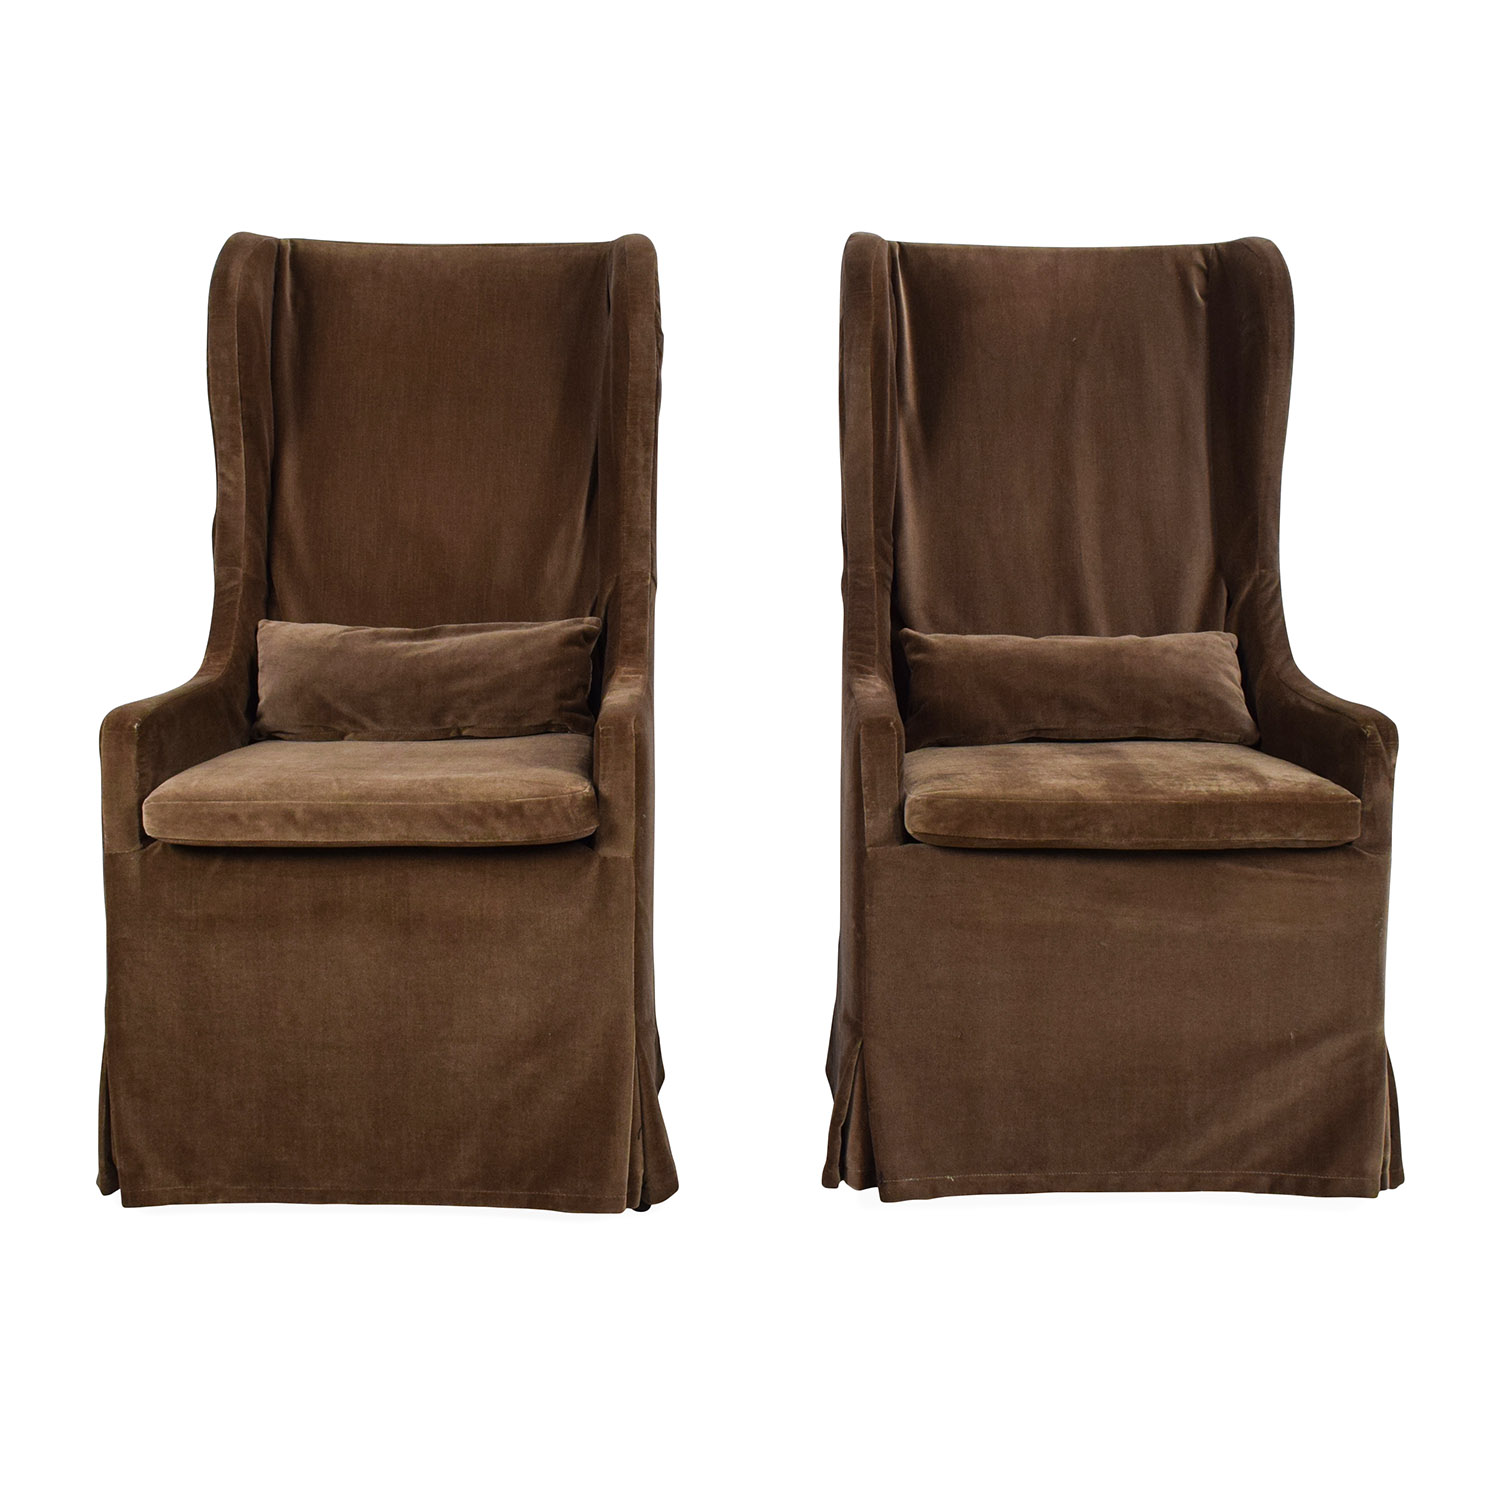 Restoration Hardware Restoration Hardware Belgian Wingback Chair Pair Accent Chairs